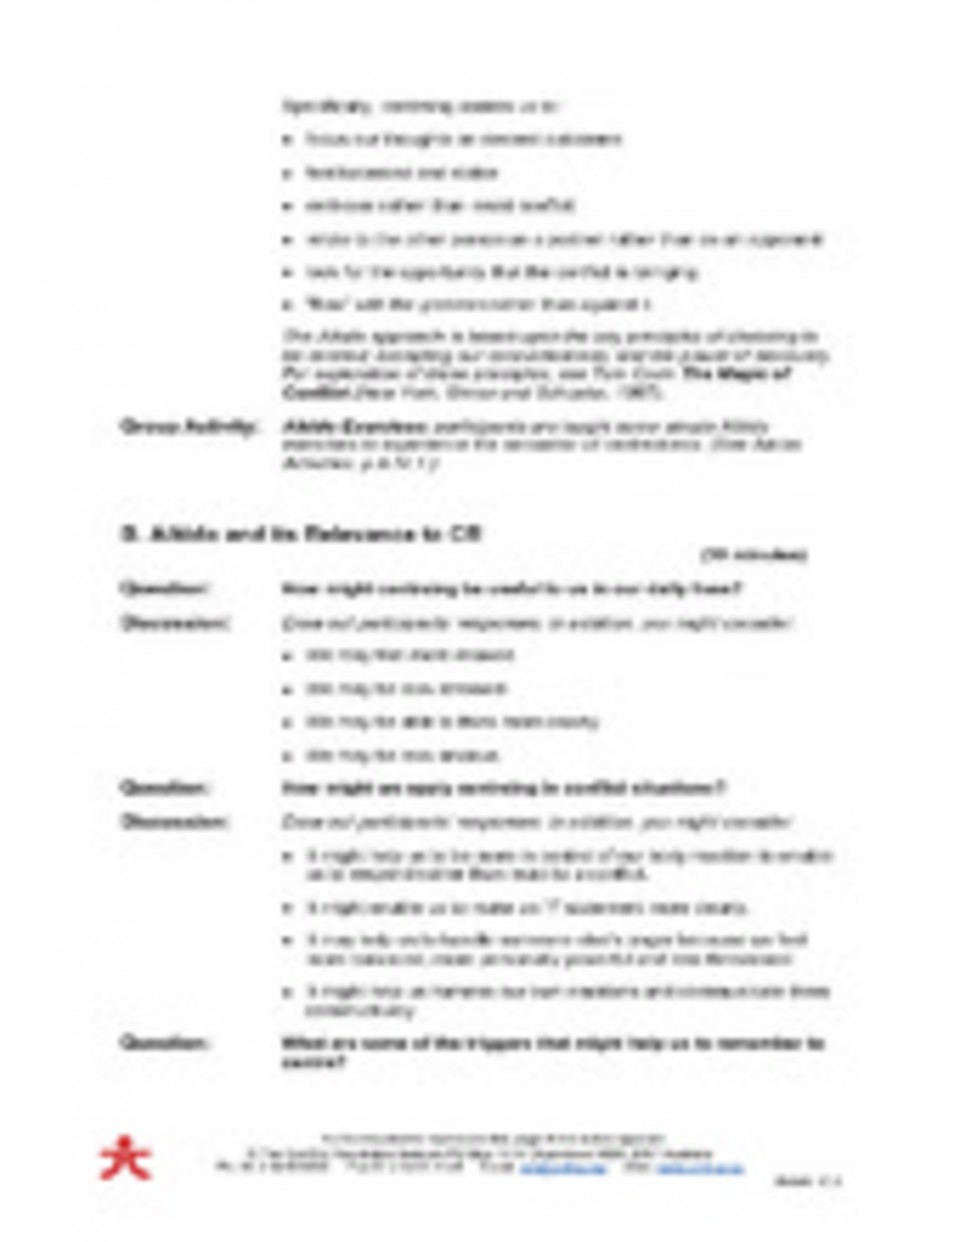 011 Conflict20resolution20class20notes 28058935 Aikido Conflict Resolution Material Part 17page2 Essay Example Formidable Trifles Questions Feminism Topics 960